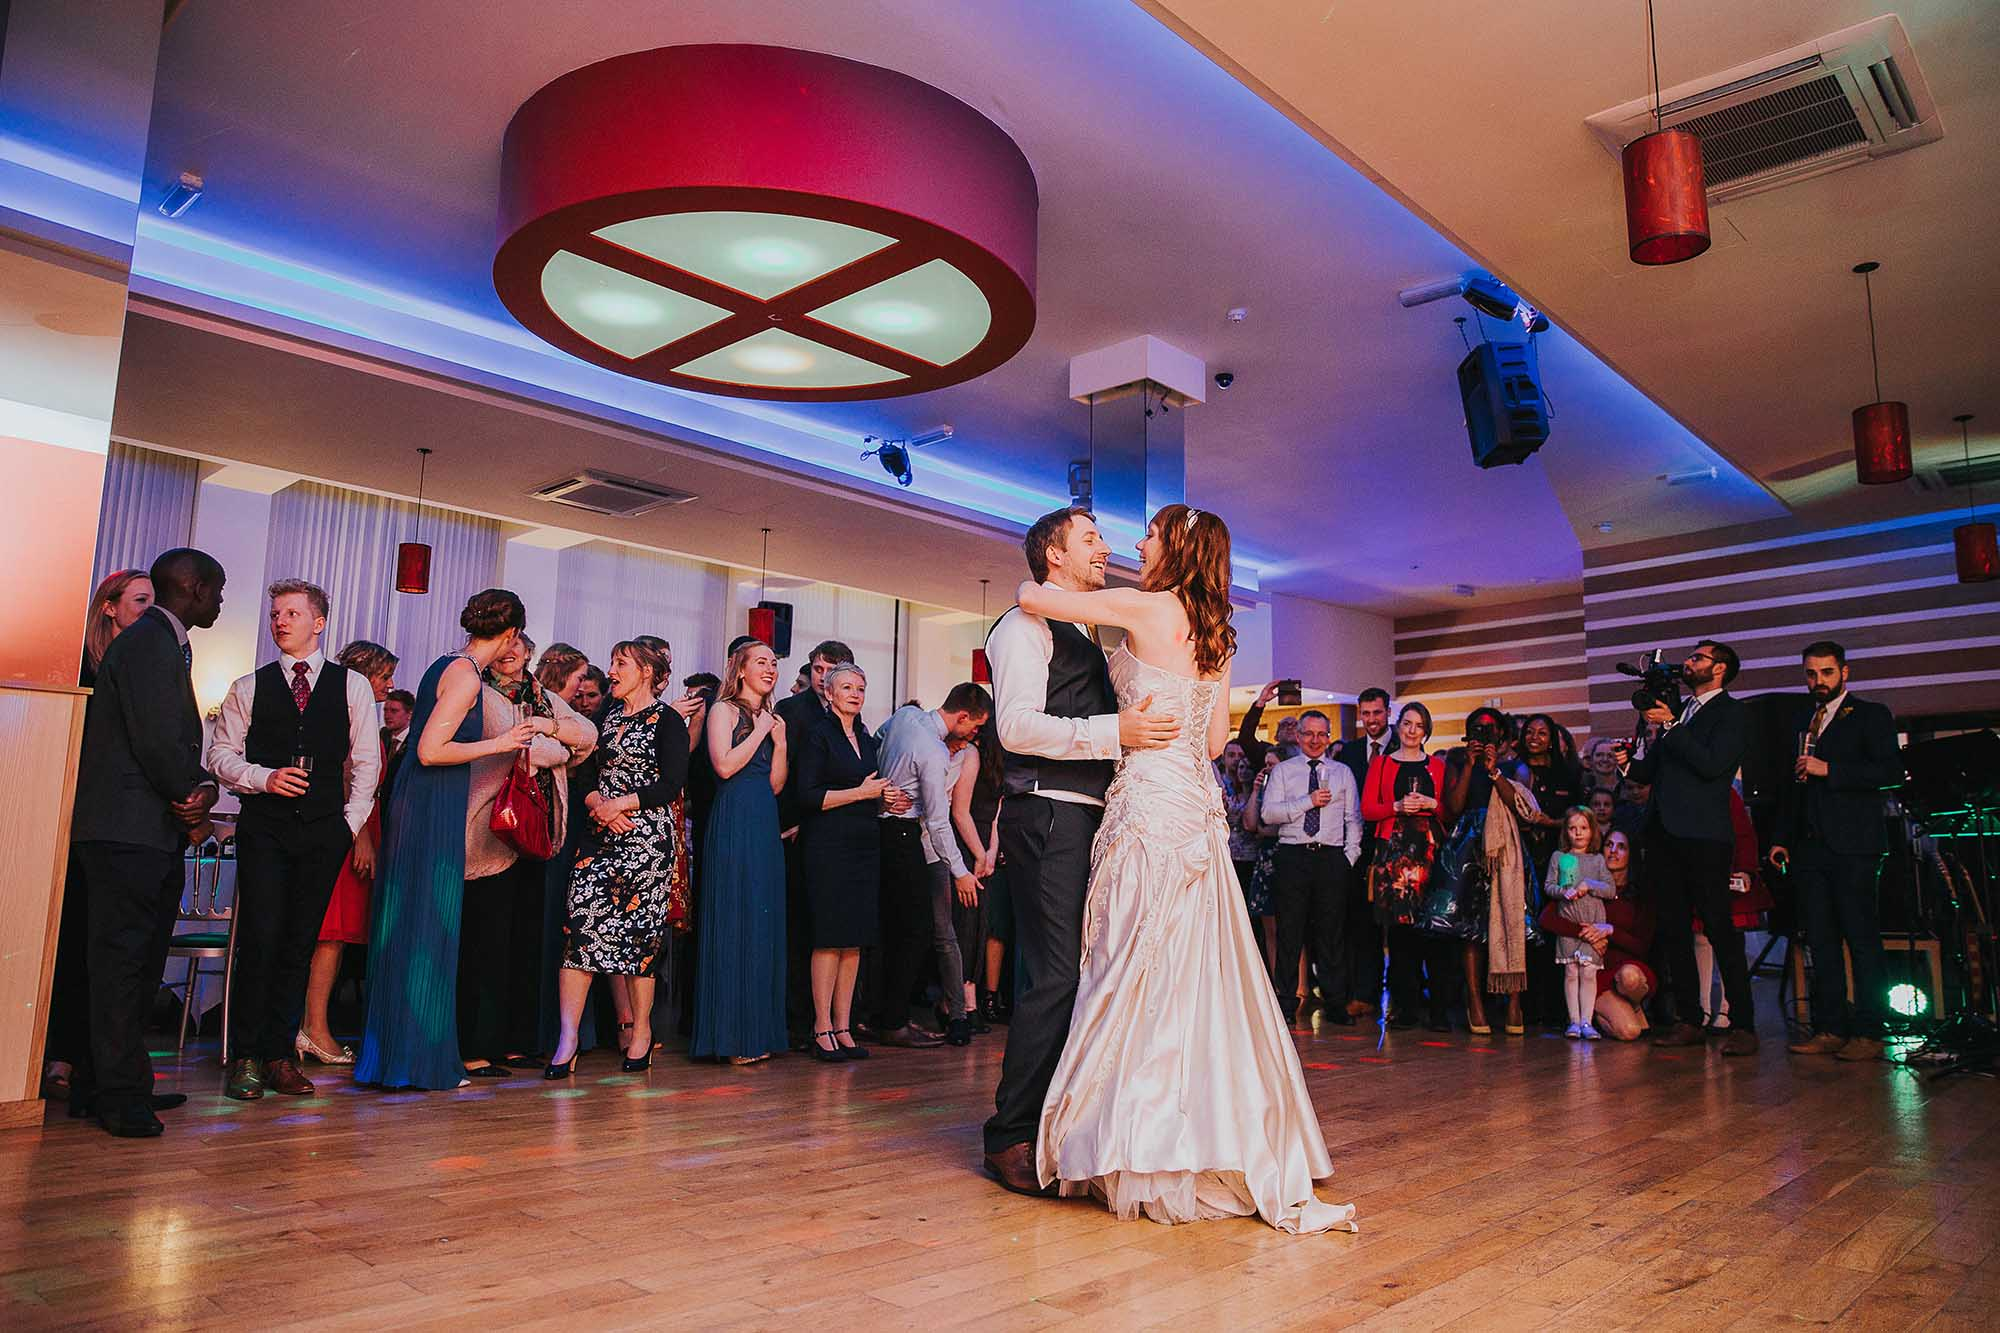 City Limits Dance Studio Sheffield wedding reception